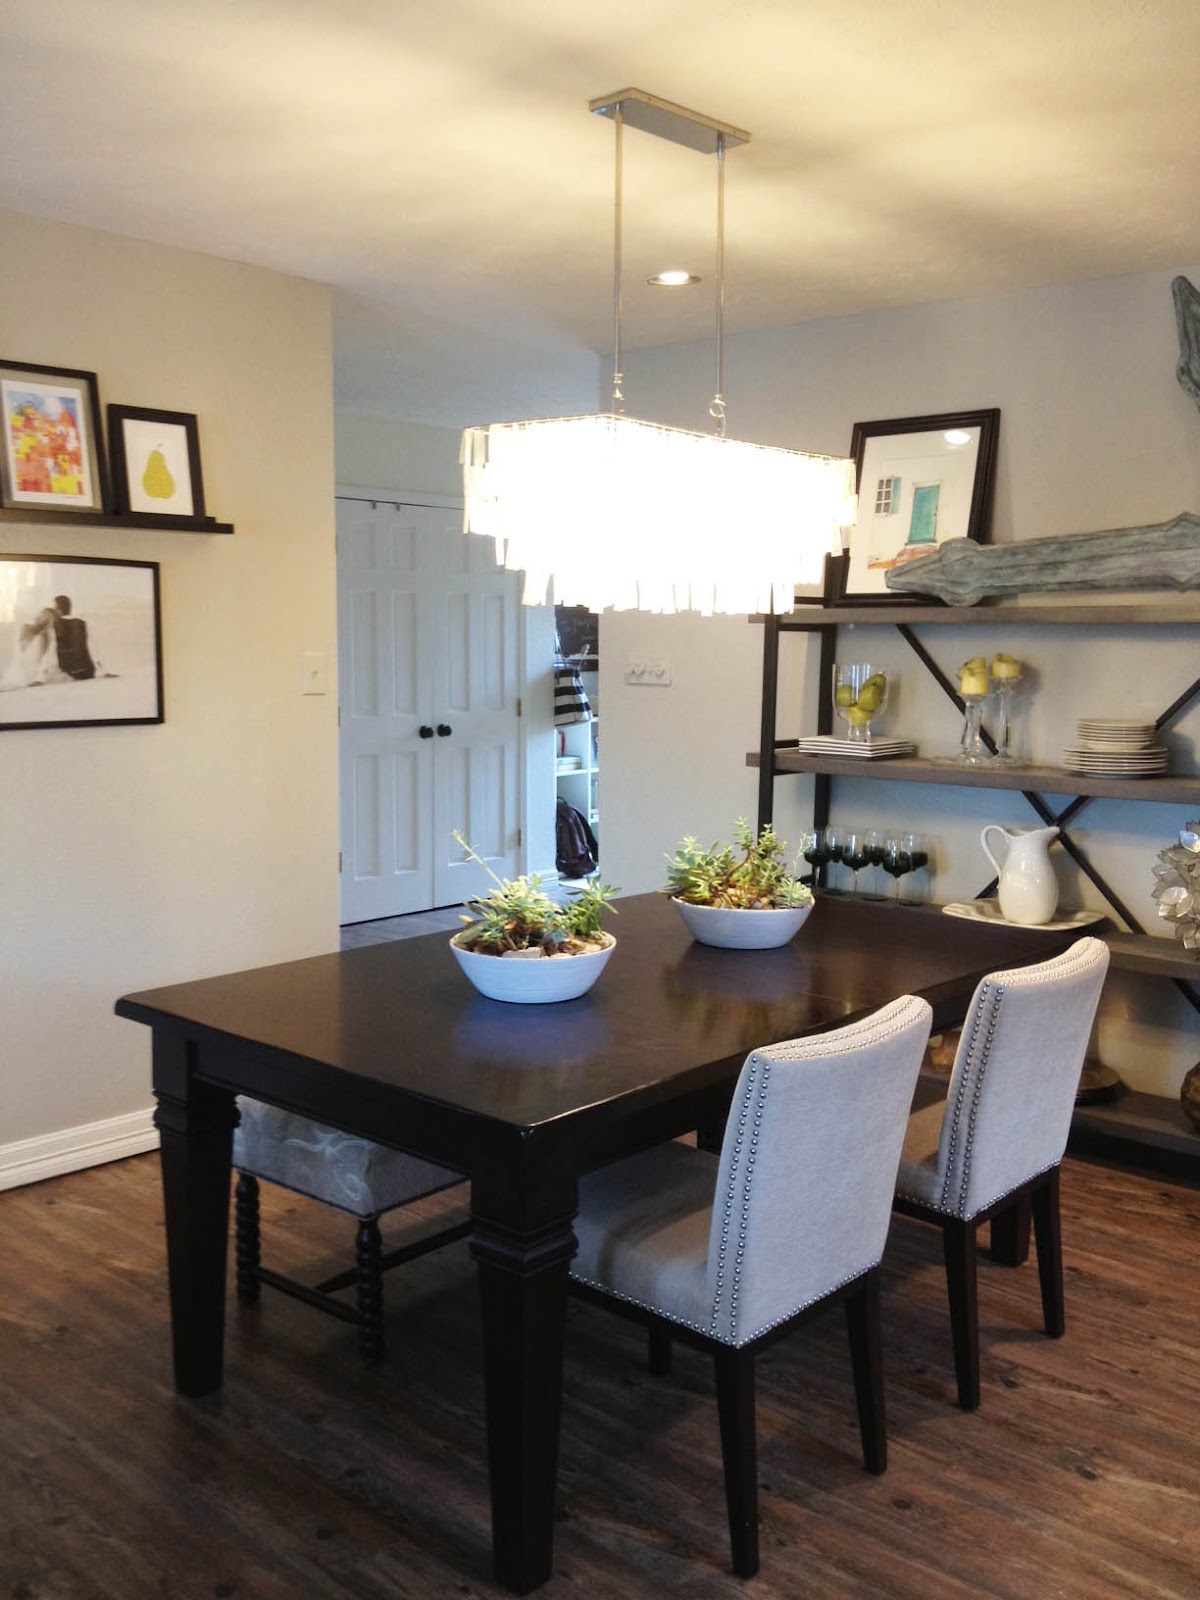 Creative DIY Dining Room Storage Ideas You Need to Check